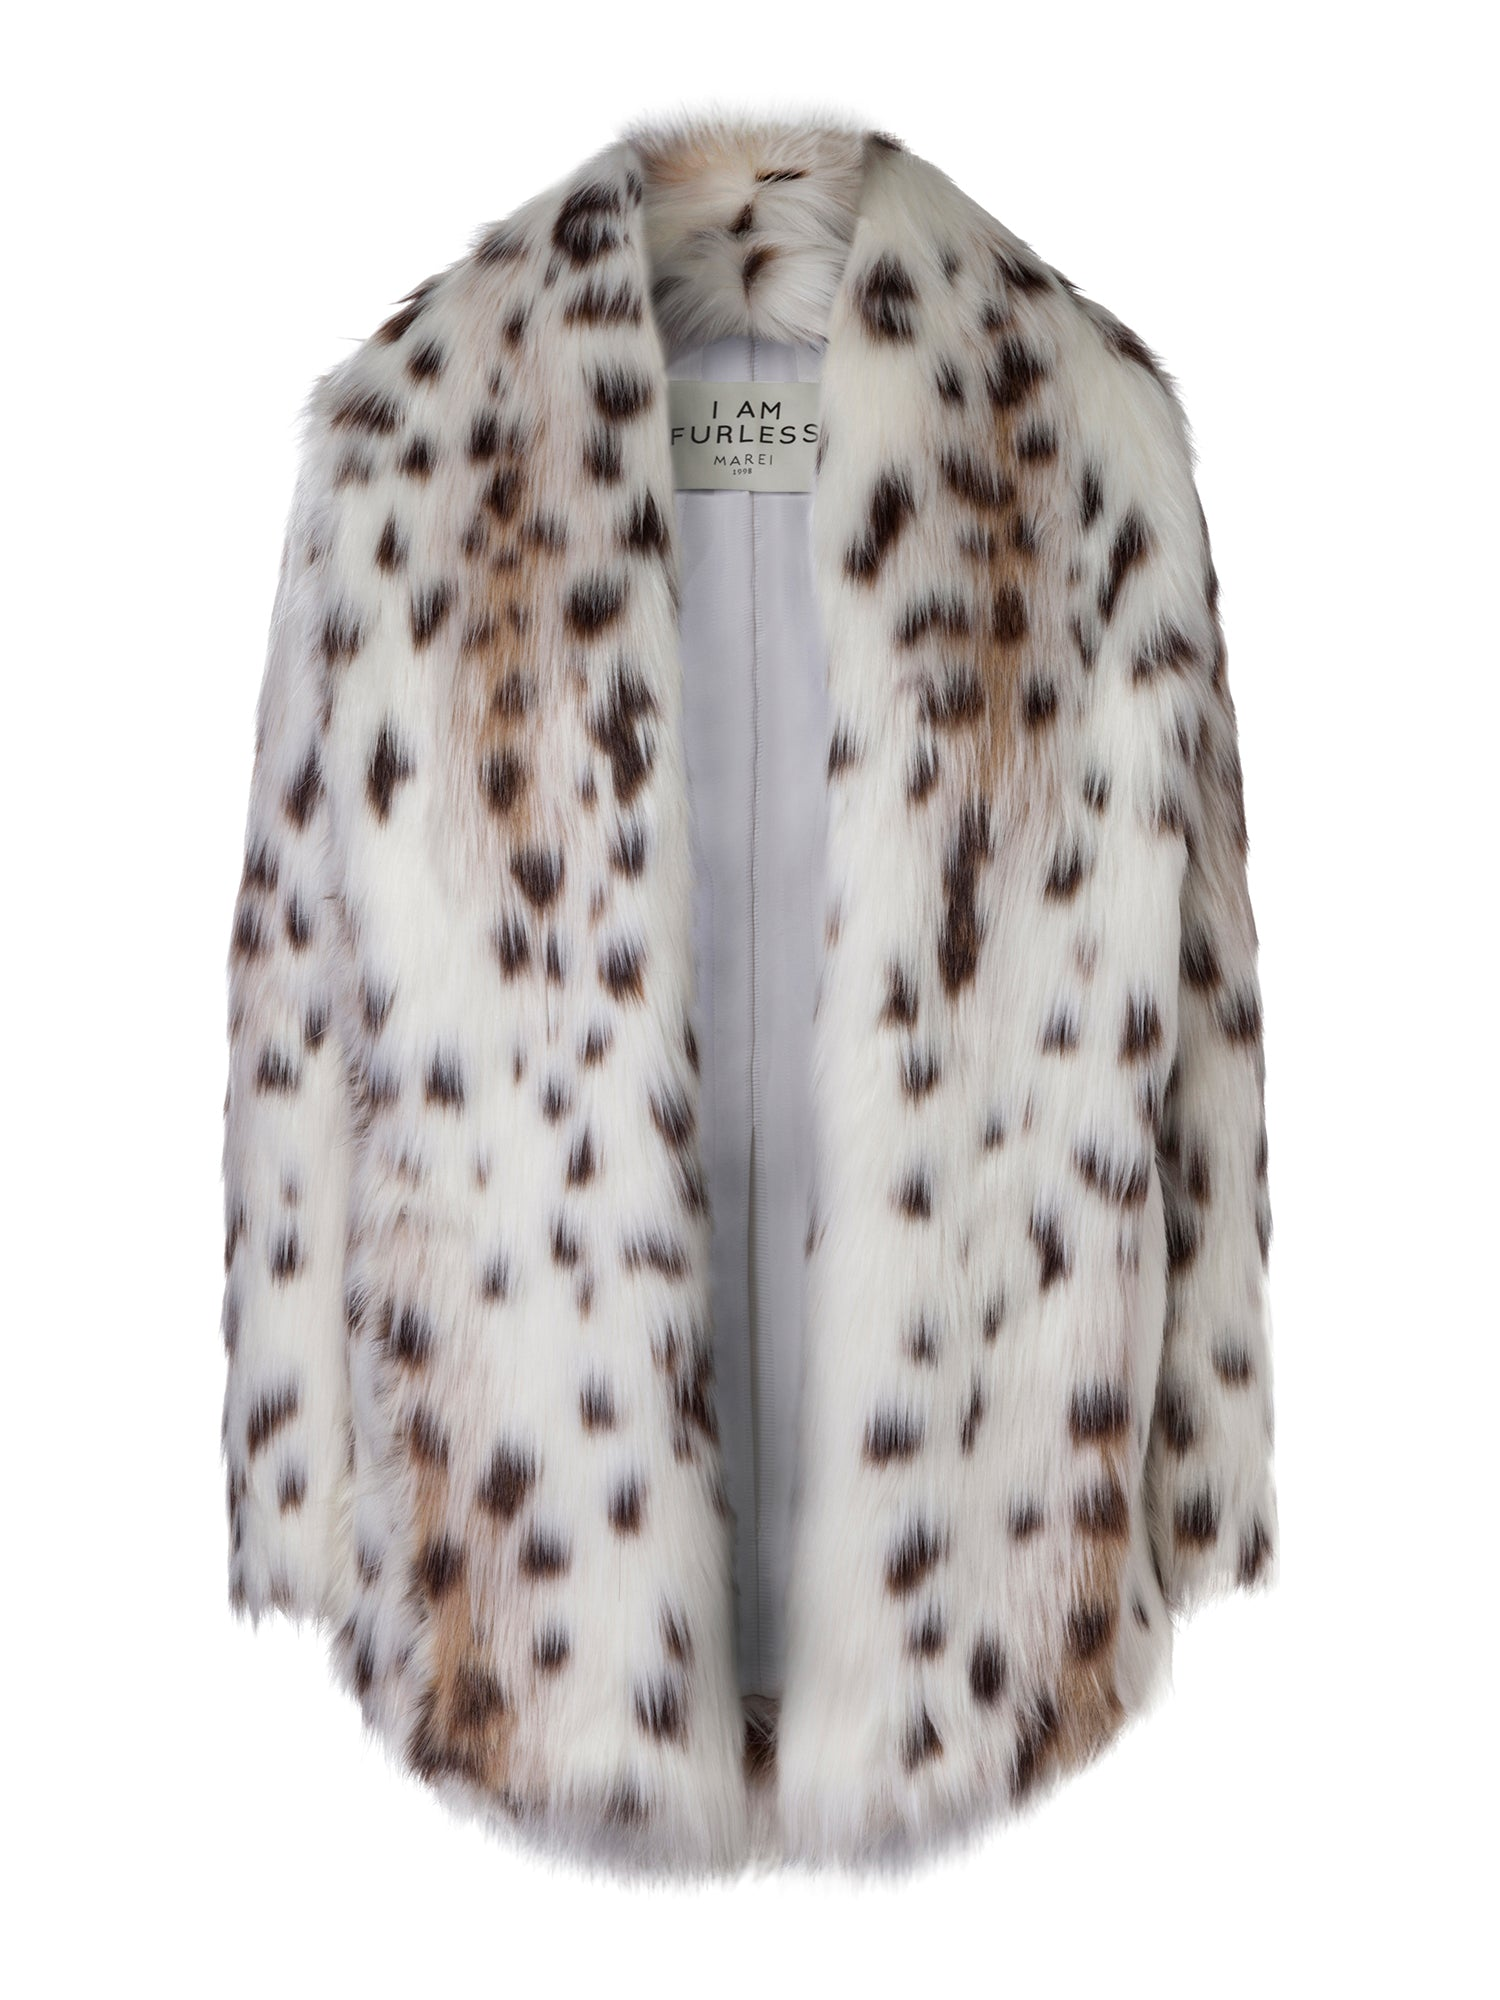 A Packshot Of Marei1998's Tiger Lily Faux Fur Coat In Linca Color. Featuring Spotted Design, Oversized Silhouette And Shawl Collar. Wardrobe Staple. Front View. Resort 2020 Collection - Furless Friendship.